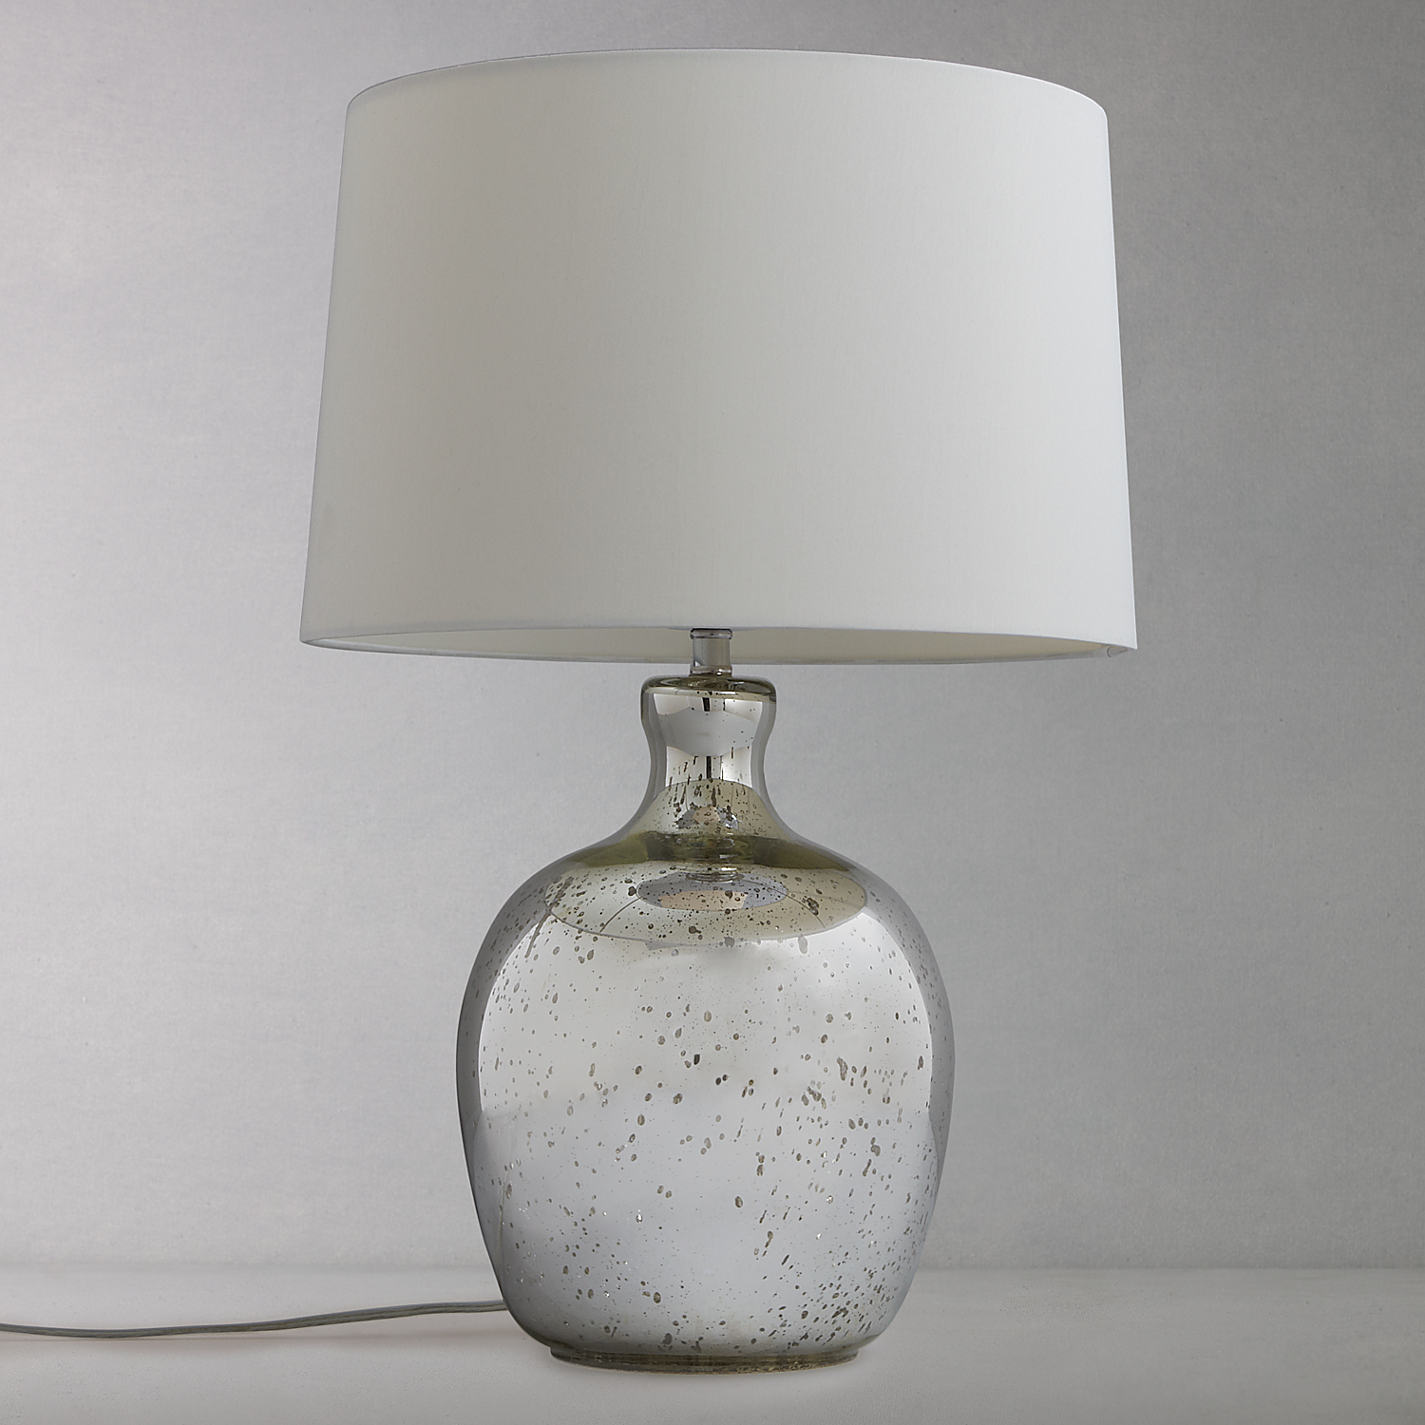 mirror-table-lamp-photo-13